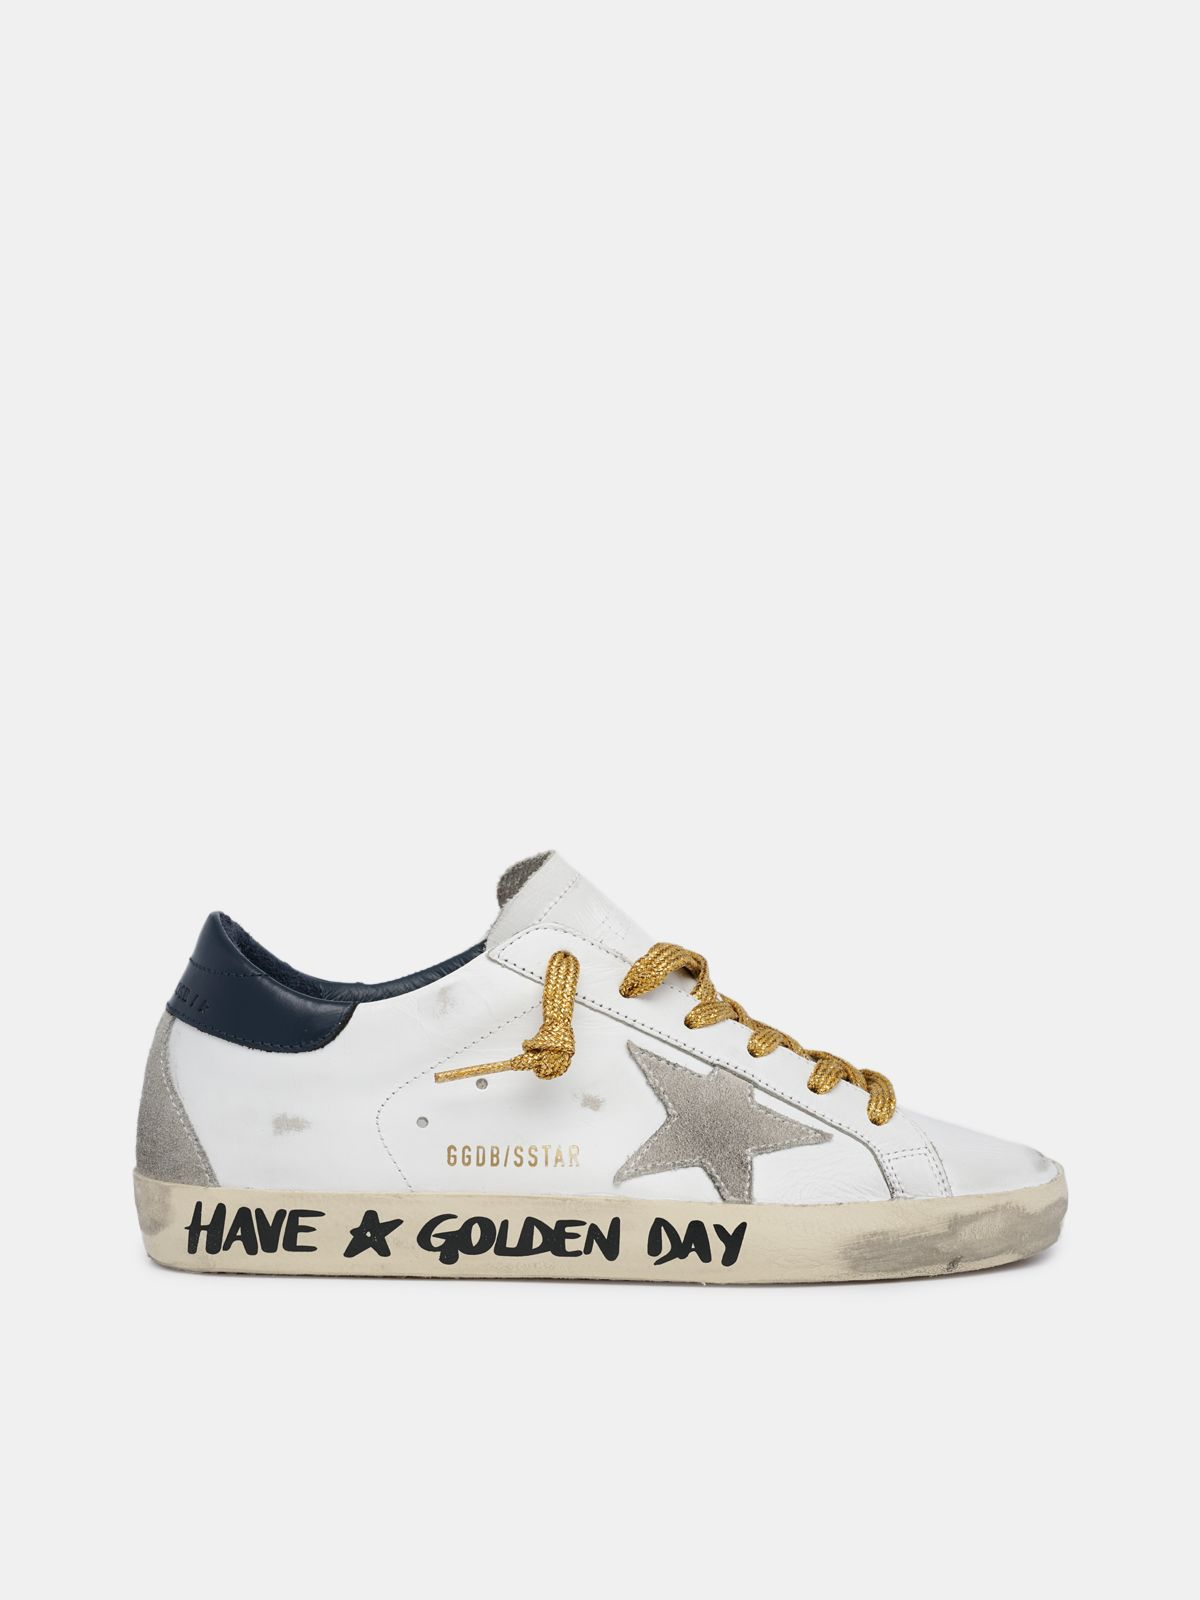 Super-Star sneakers with handwritten Have a Golden Day lettering